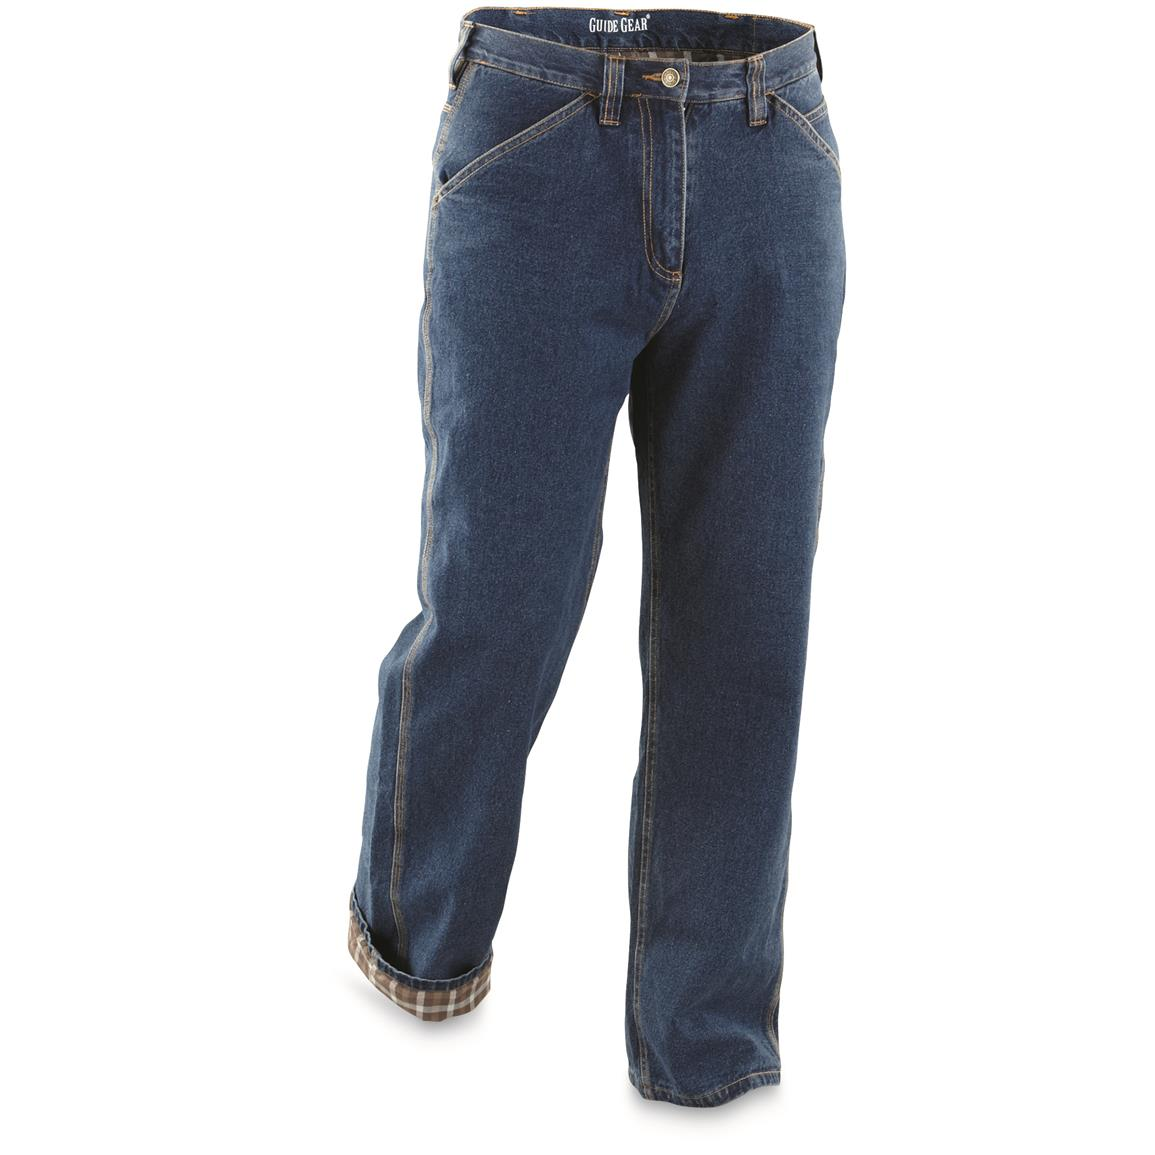 Guide Gear Men's Flannel-Lined Carpenter Jeans